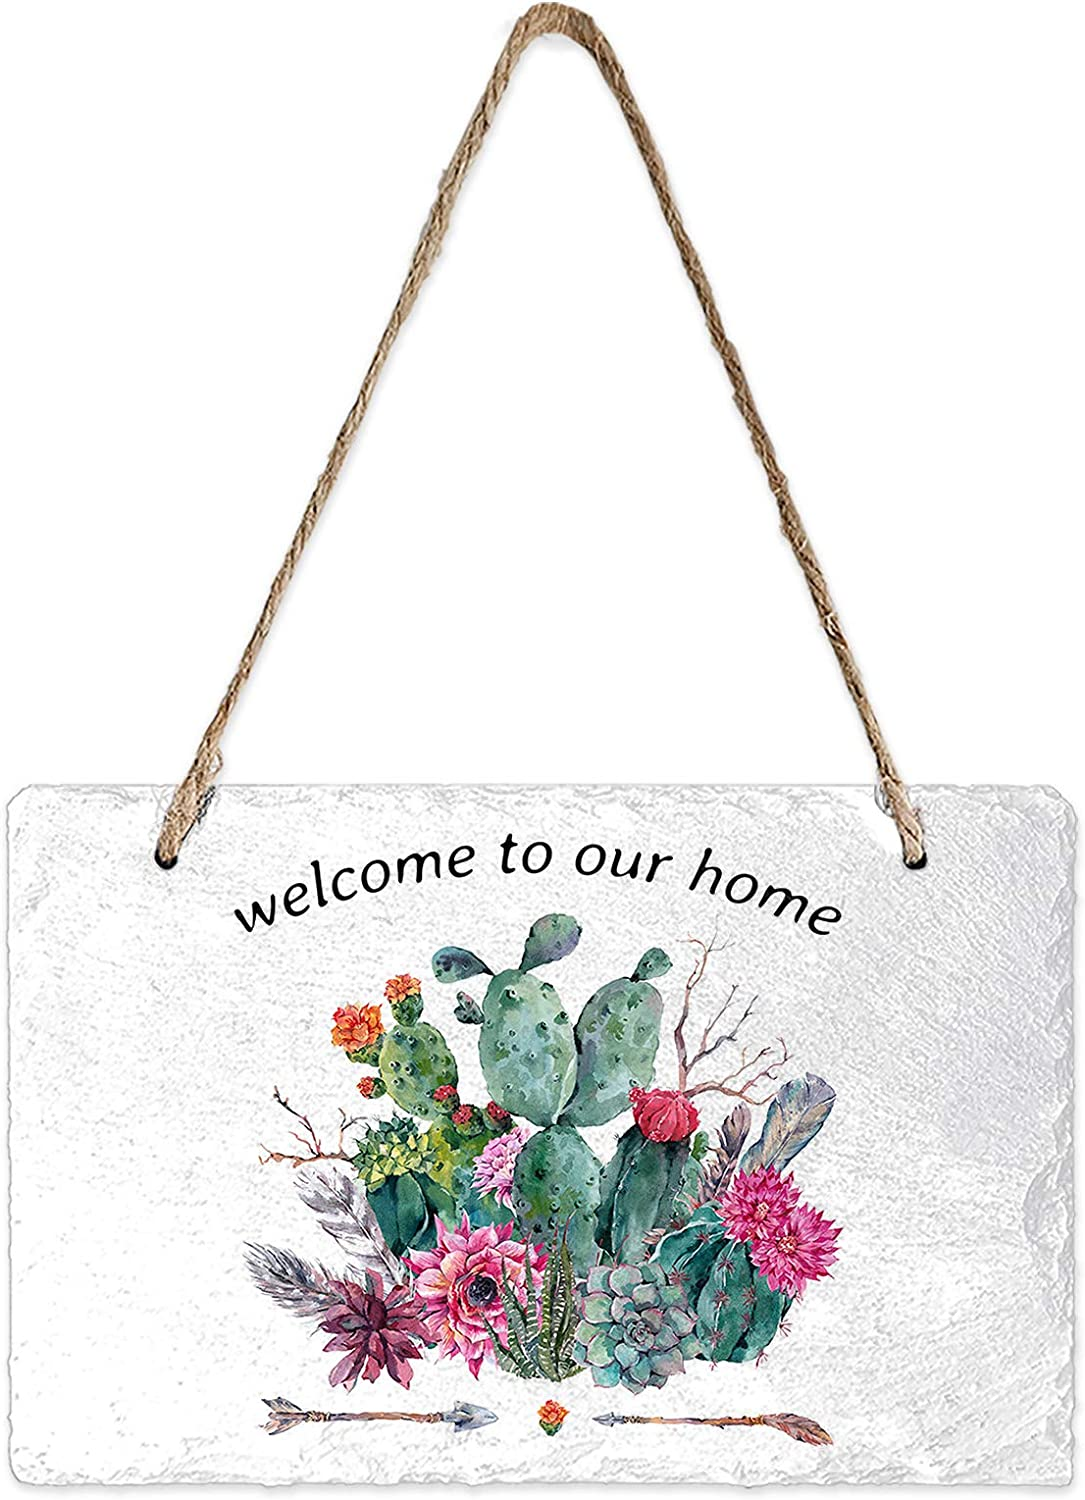 Slate Hanging Wall Sign Tropical Cactus Welcome to Our Home Wall Plaque Wood Signs with Rope Nature Plants DIY Hanging Door Sign for Front Porch/Entryway/Outdoor/Garden Home Decor, 8x5inch